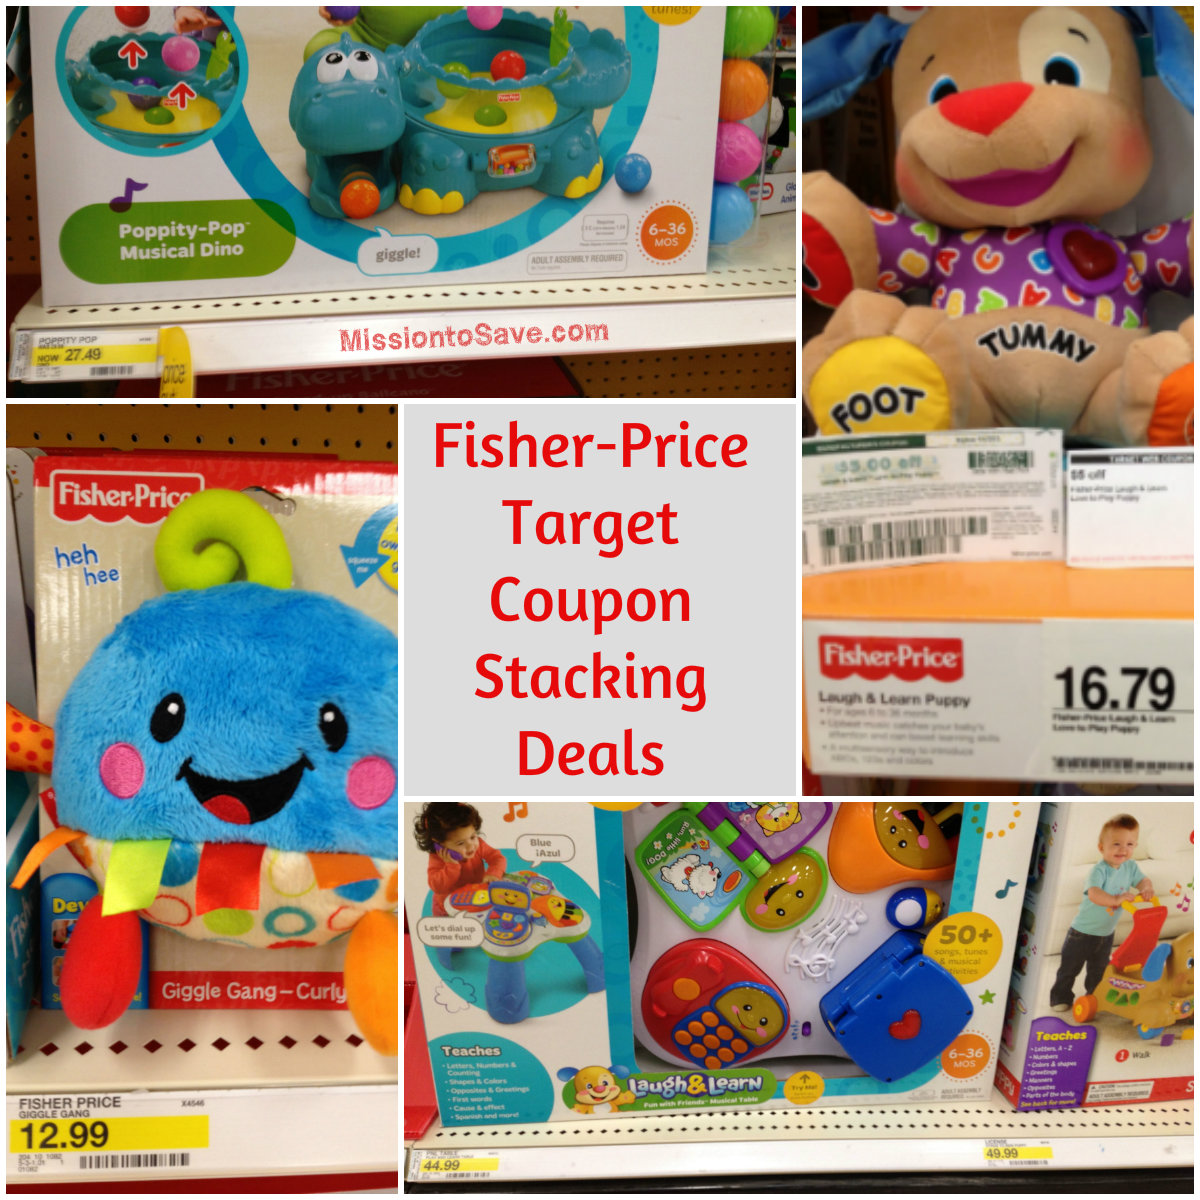 photo about Fisher Price Printable Coupons named Amazon discount coupons for fisher cost toys : Naughty coupon codes for